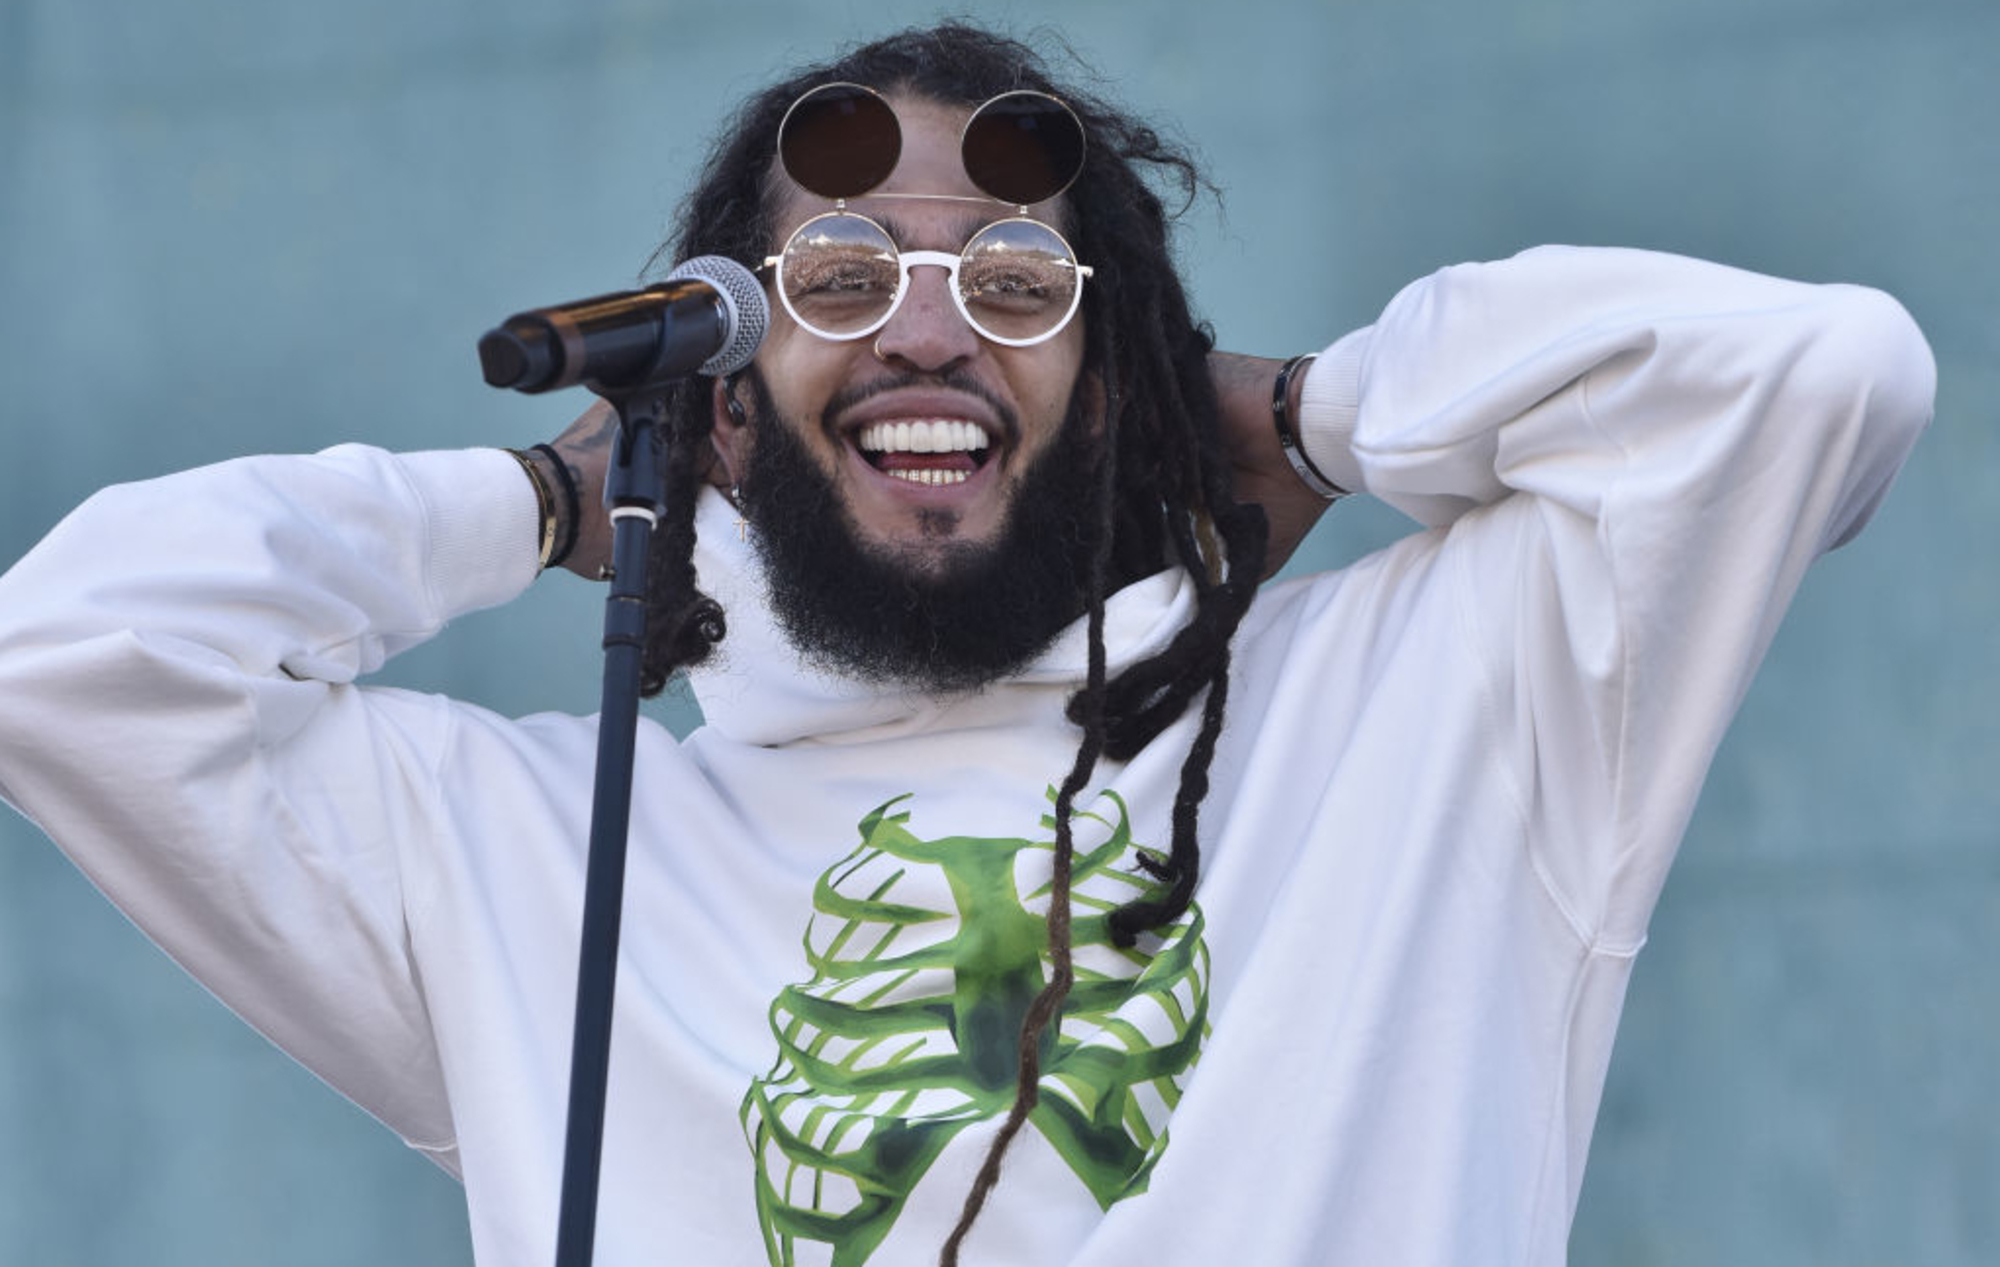 Travie McCoy signs to Hopeless Records, shares new song 'A Spoonful Of Cinnamon'